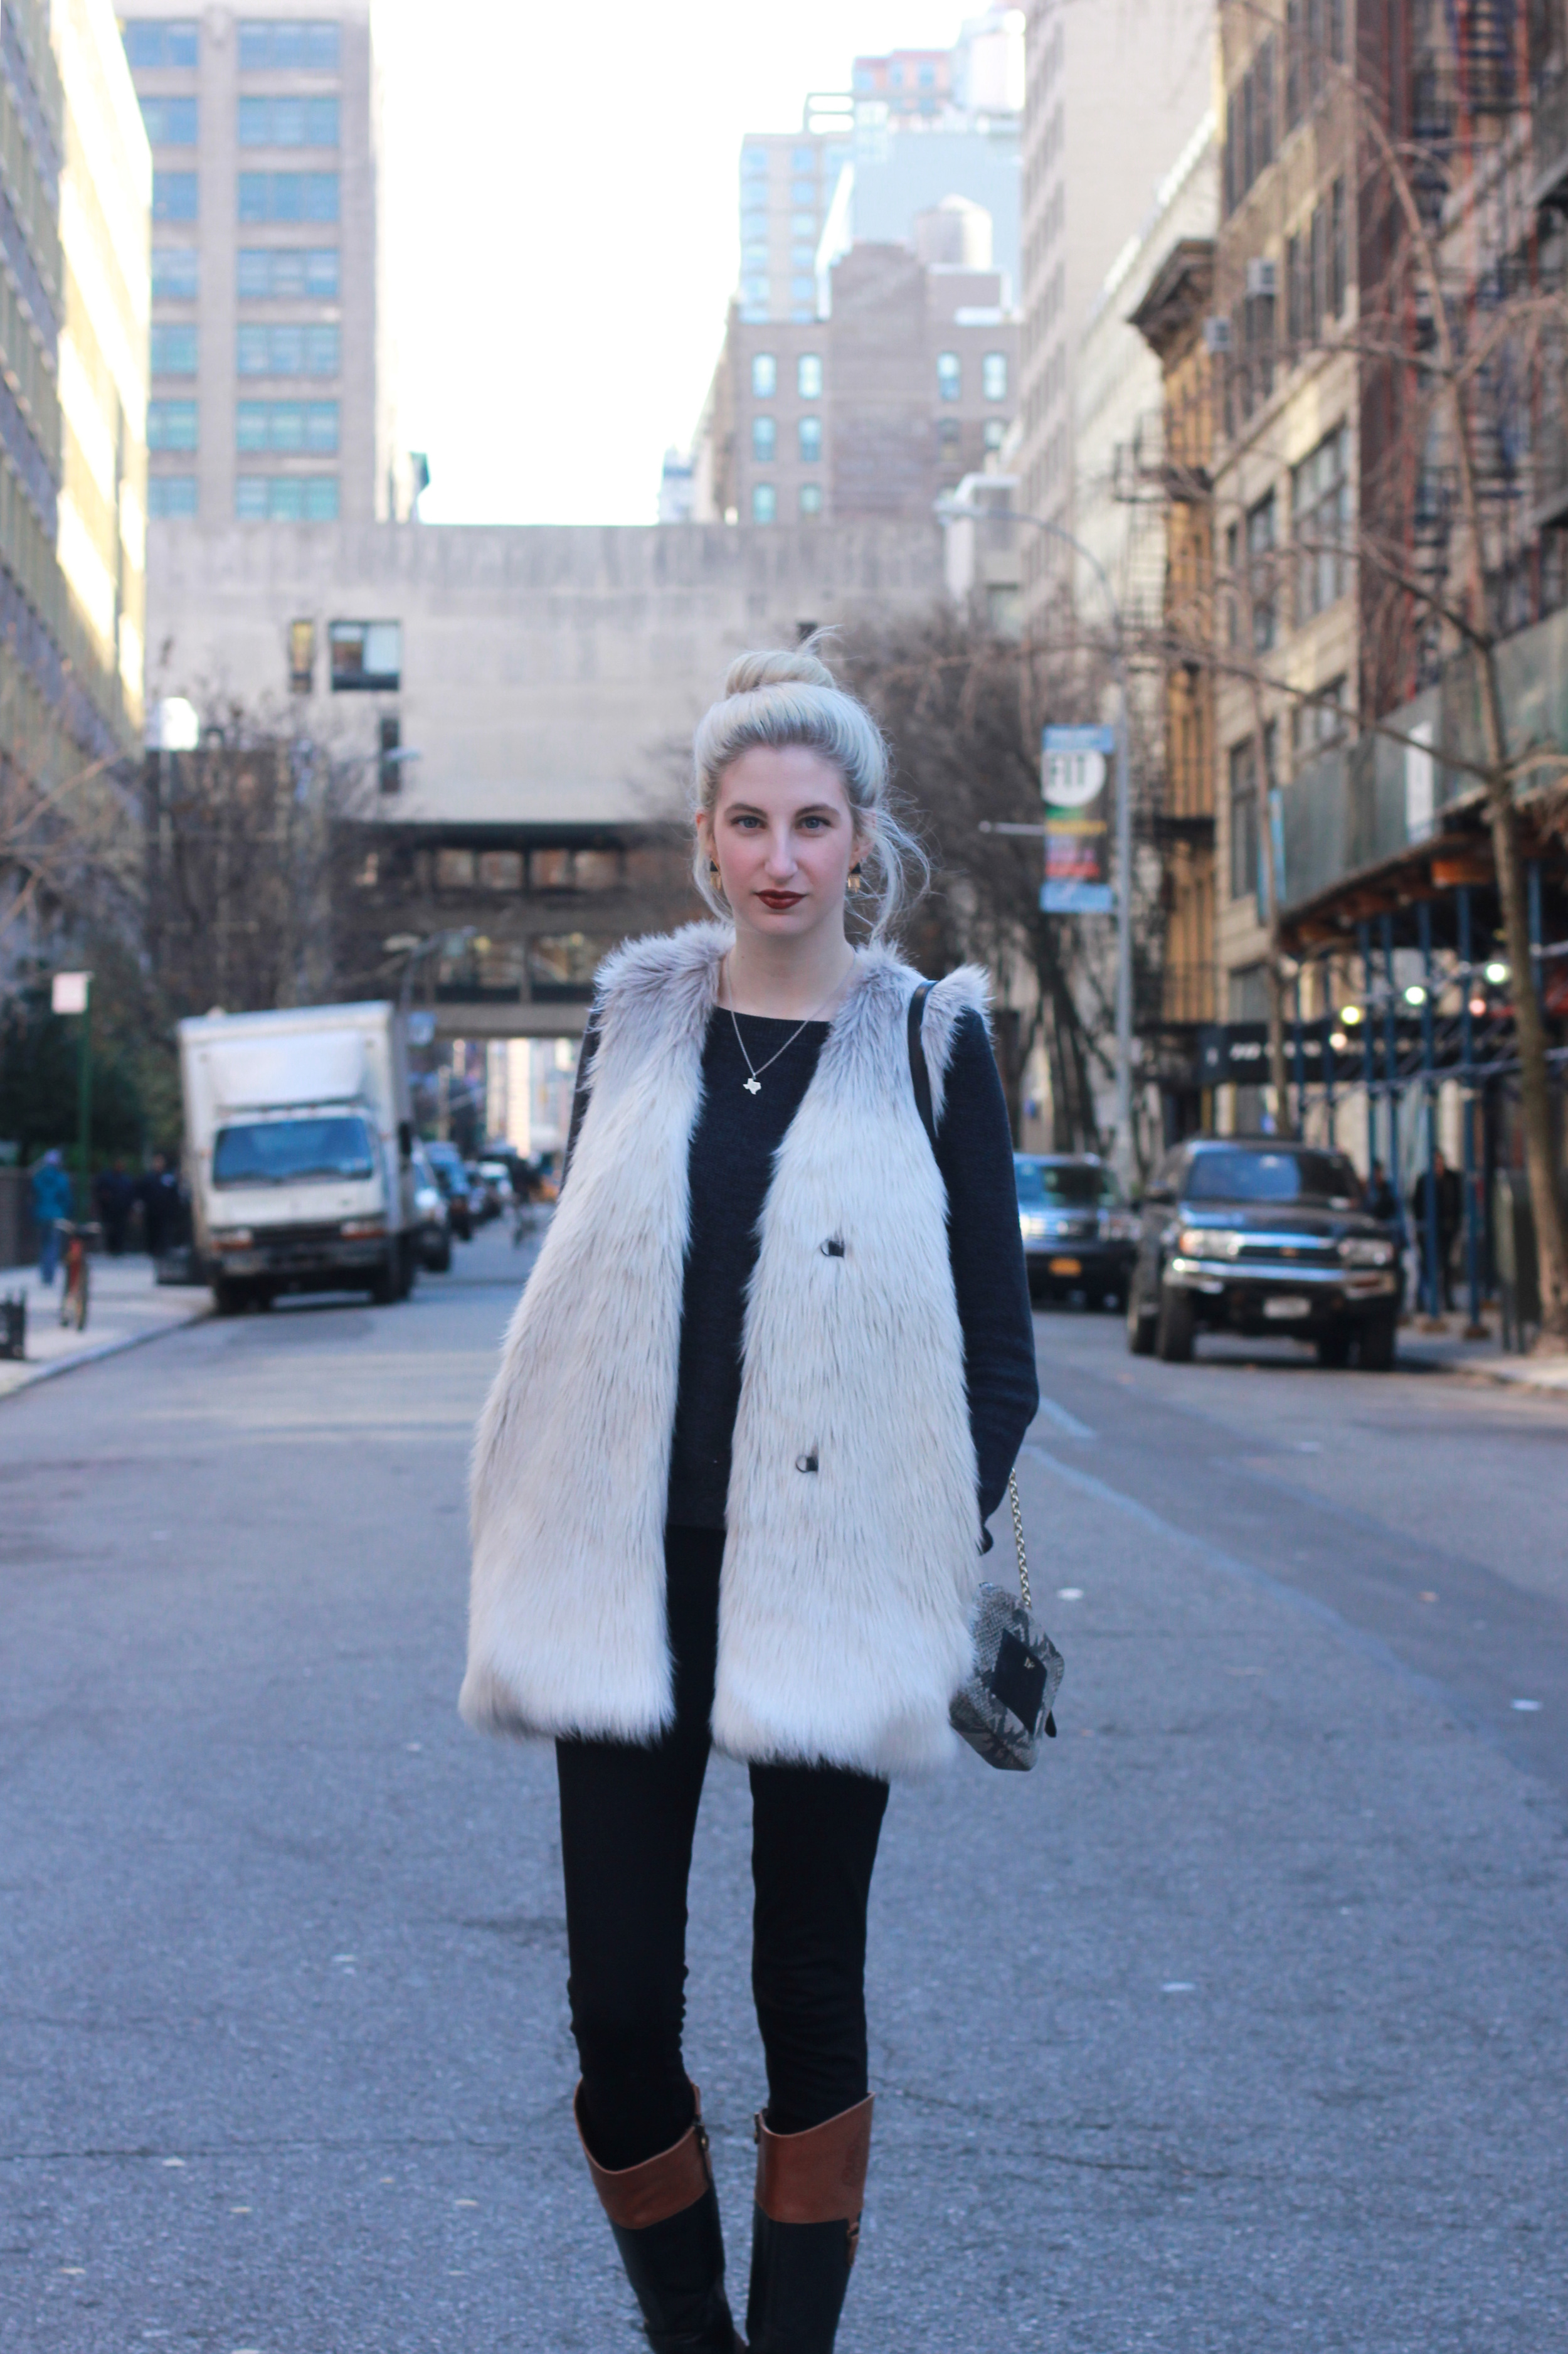 H&M triangle drop stud earrings, LOFT mixed media sweater, J.Crew snap front pixie pants, Franco Sarto riding boots, H&M white and grey Faux fur vest, Clinique Color pop lipstick in Cola Pop